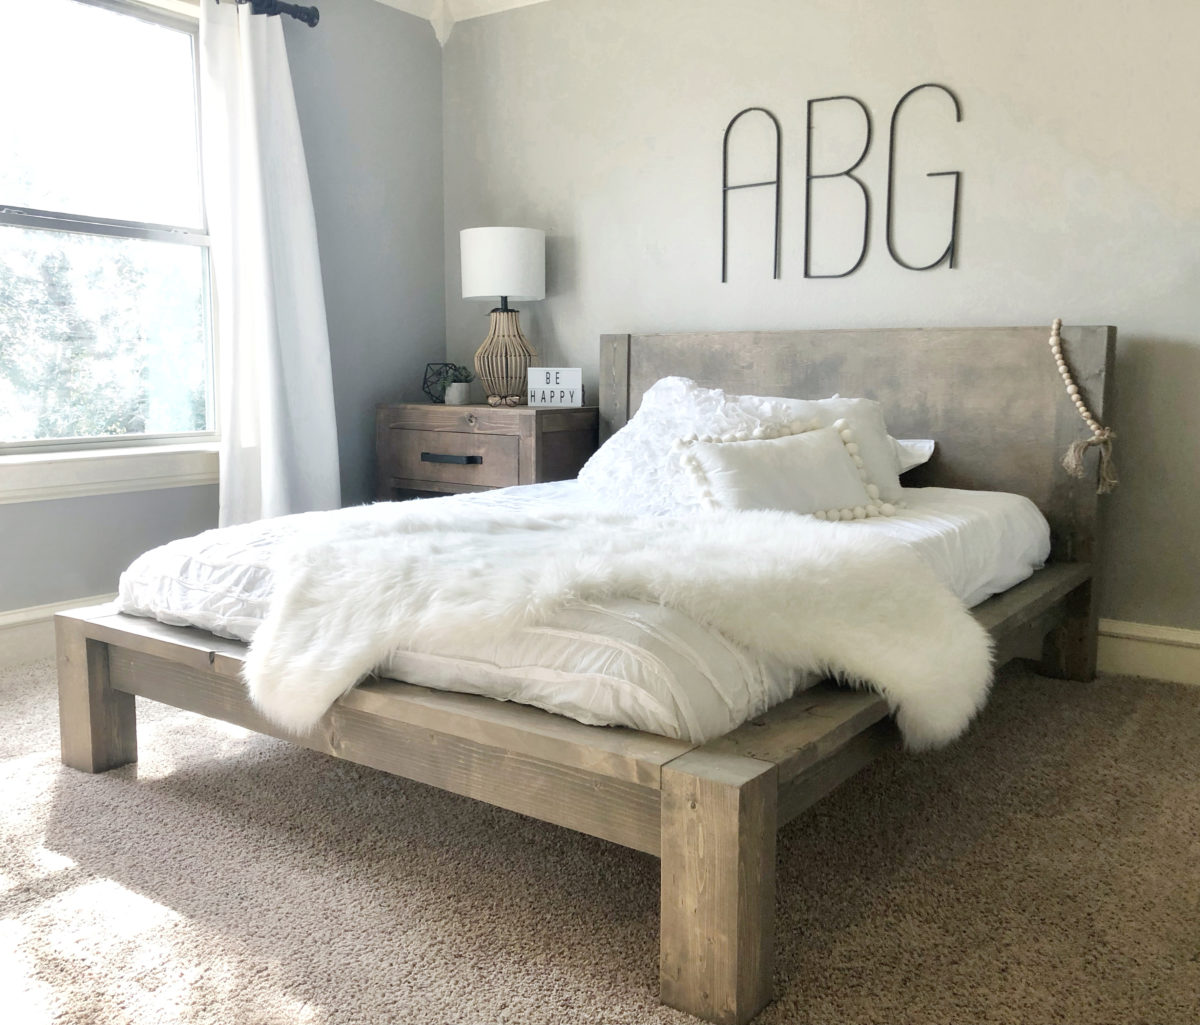 DIY Rustic Modern Queen Bed   Shanty 2 Chic